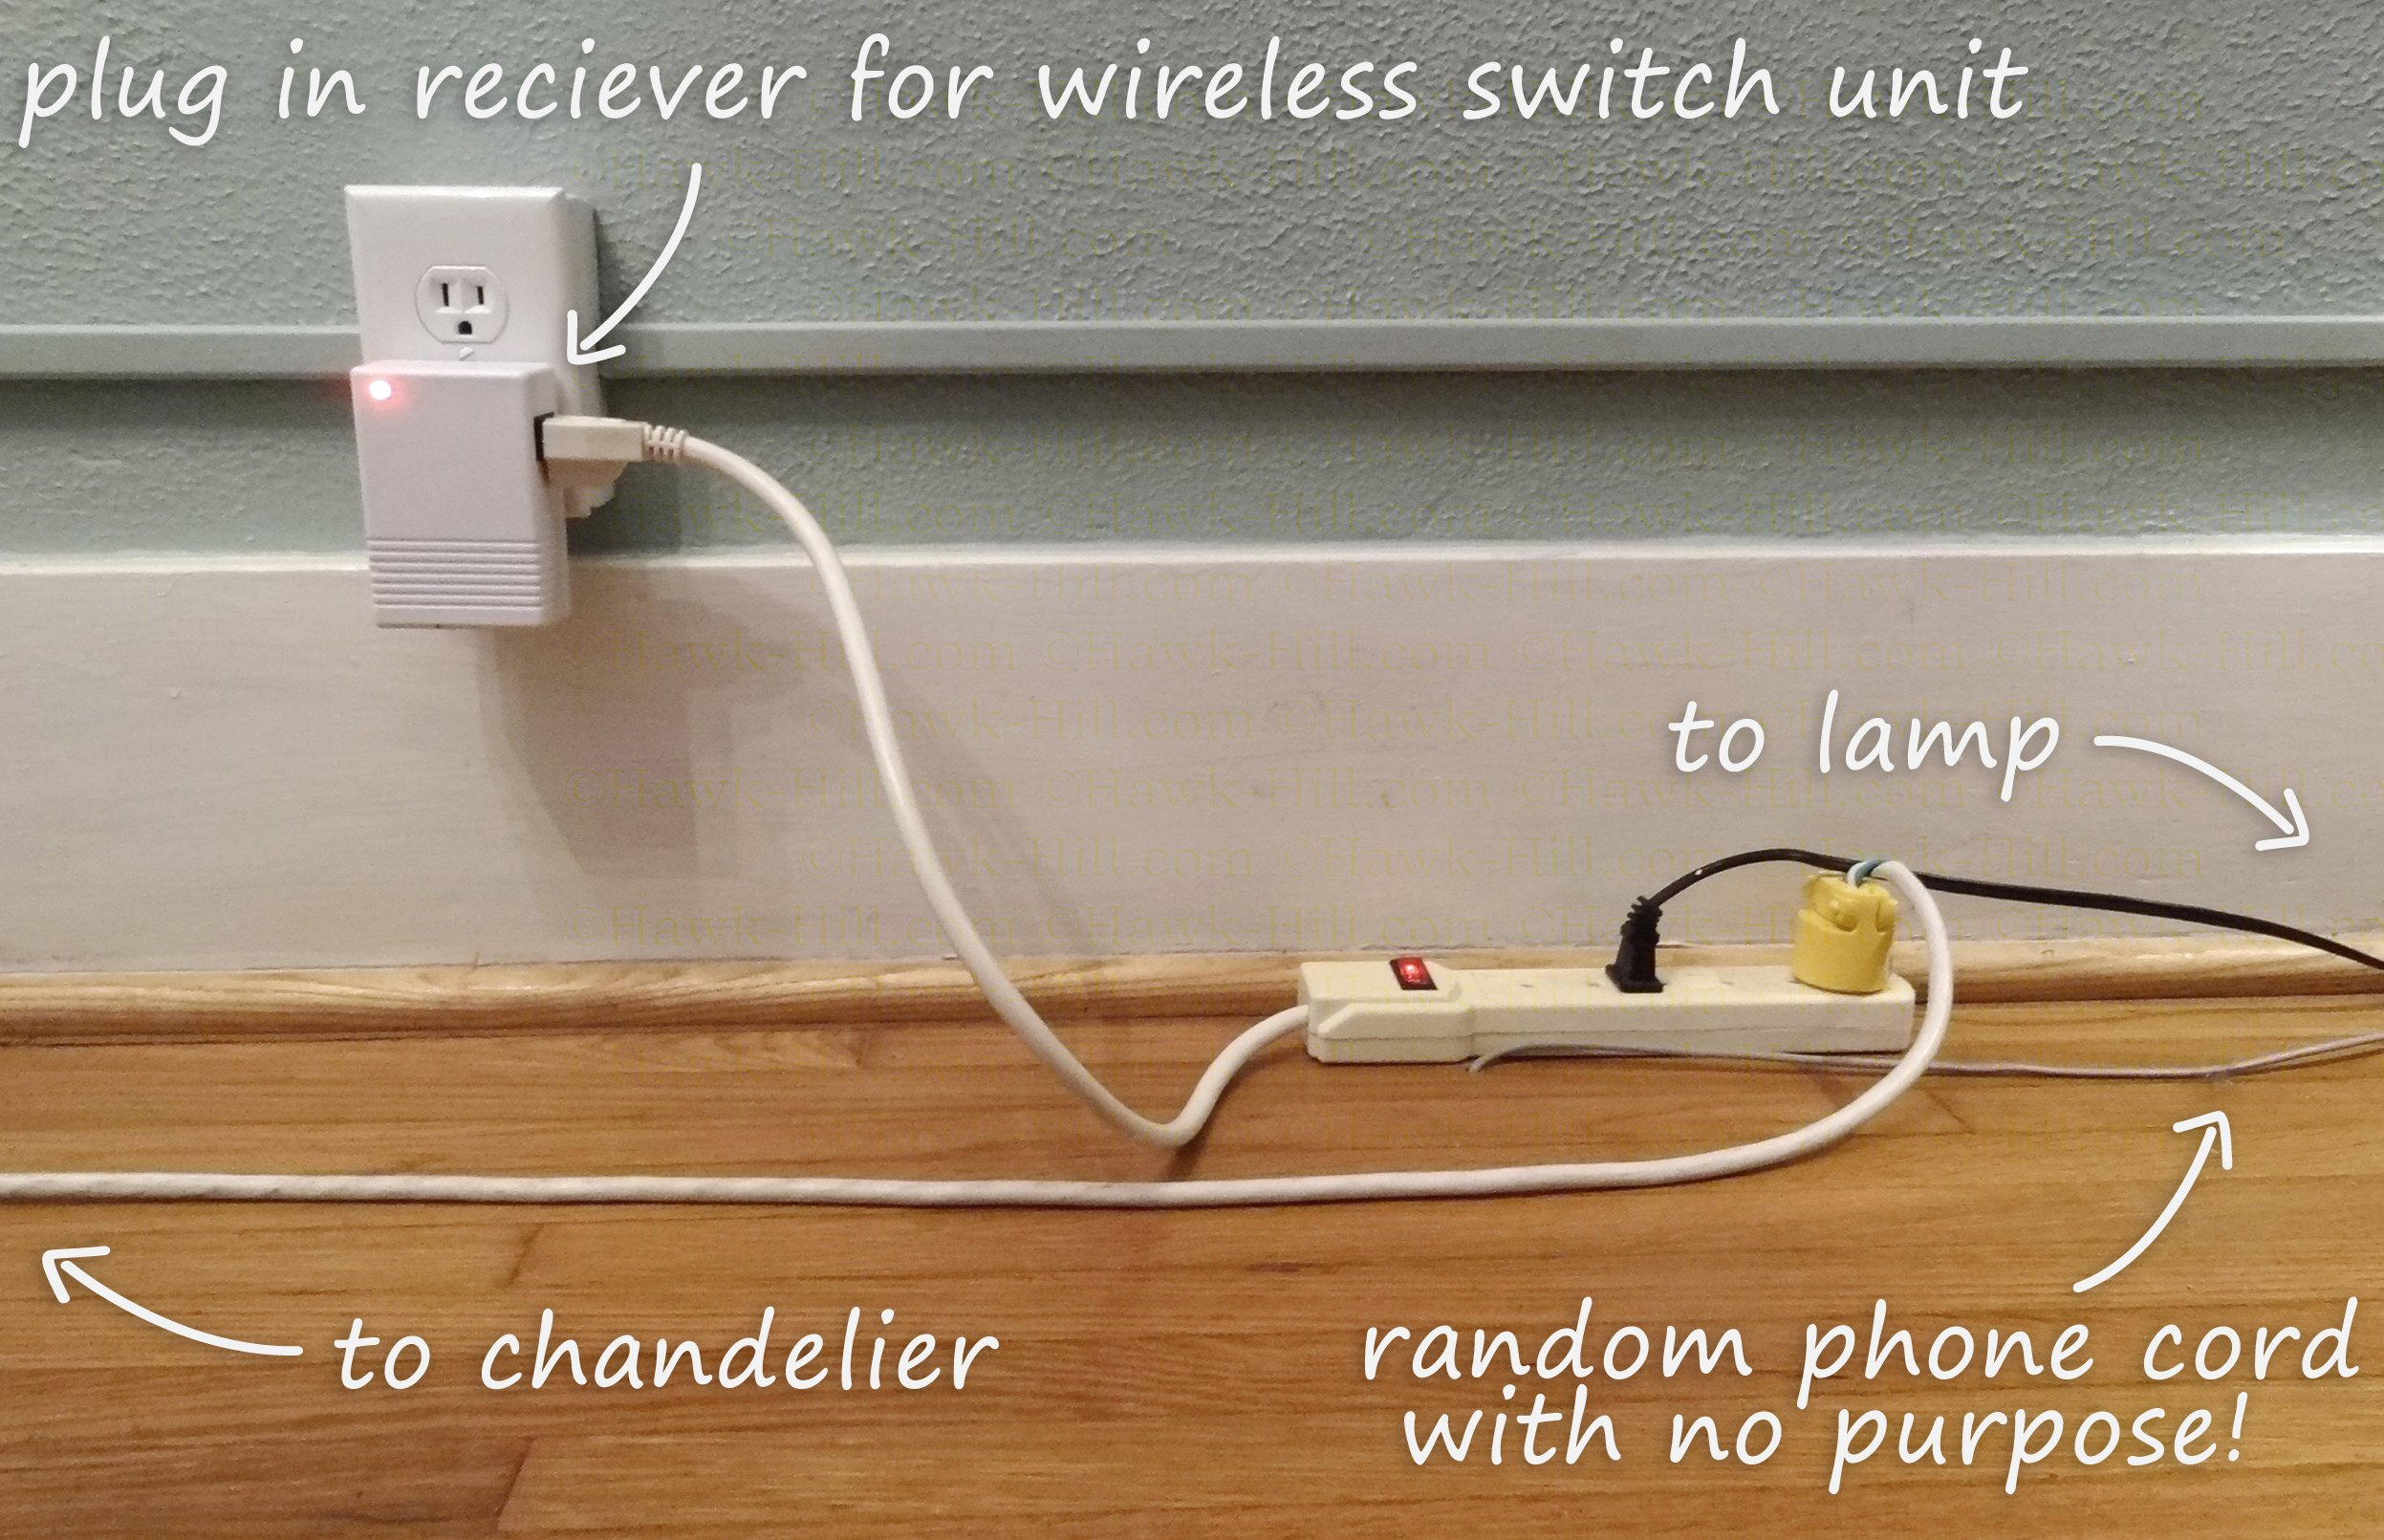 How To Add A Wireless Lightswitch Light Room Without Hardwired Outlet